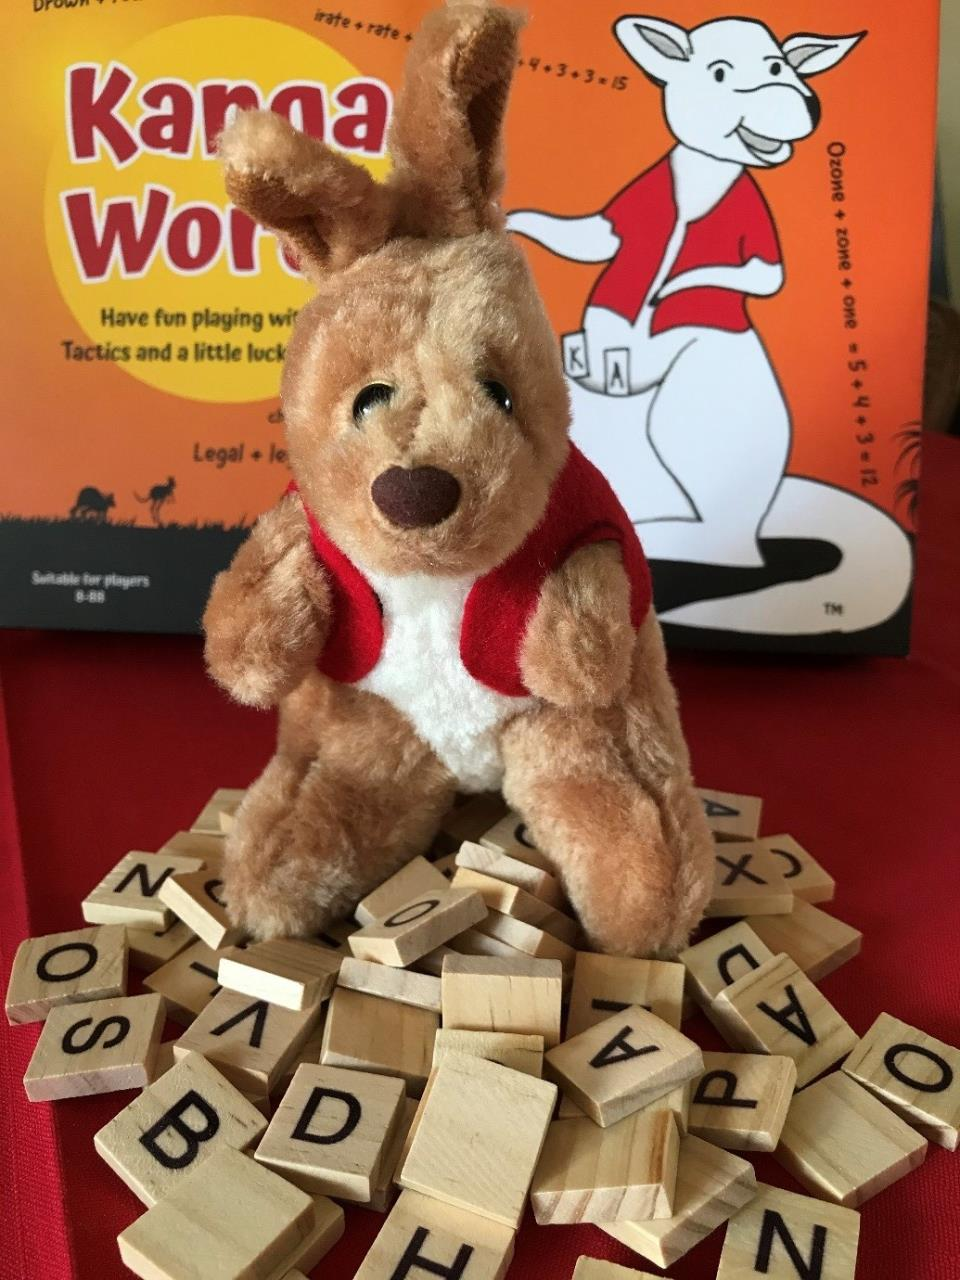 Kanga Words – Board Game launch with Don Titterton